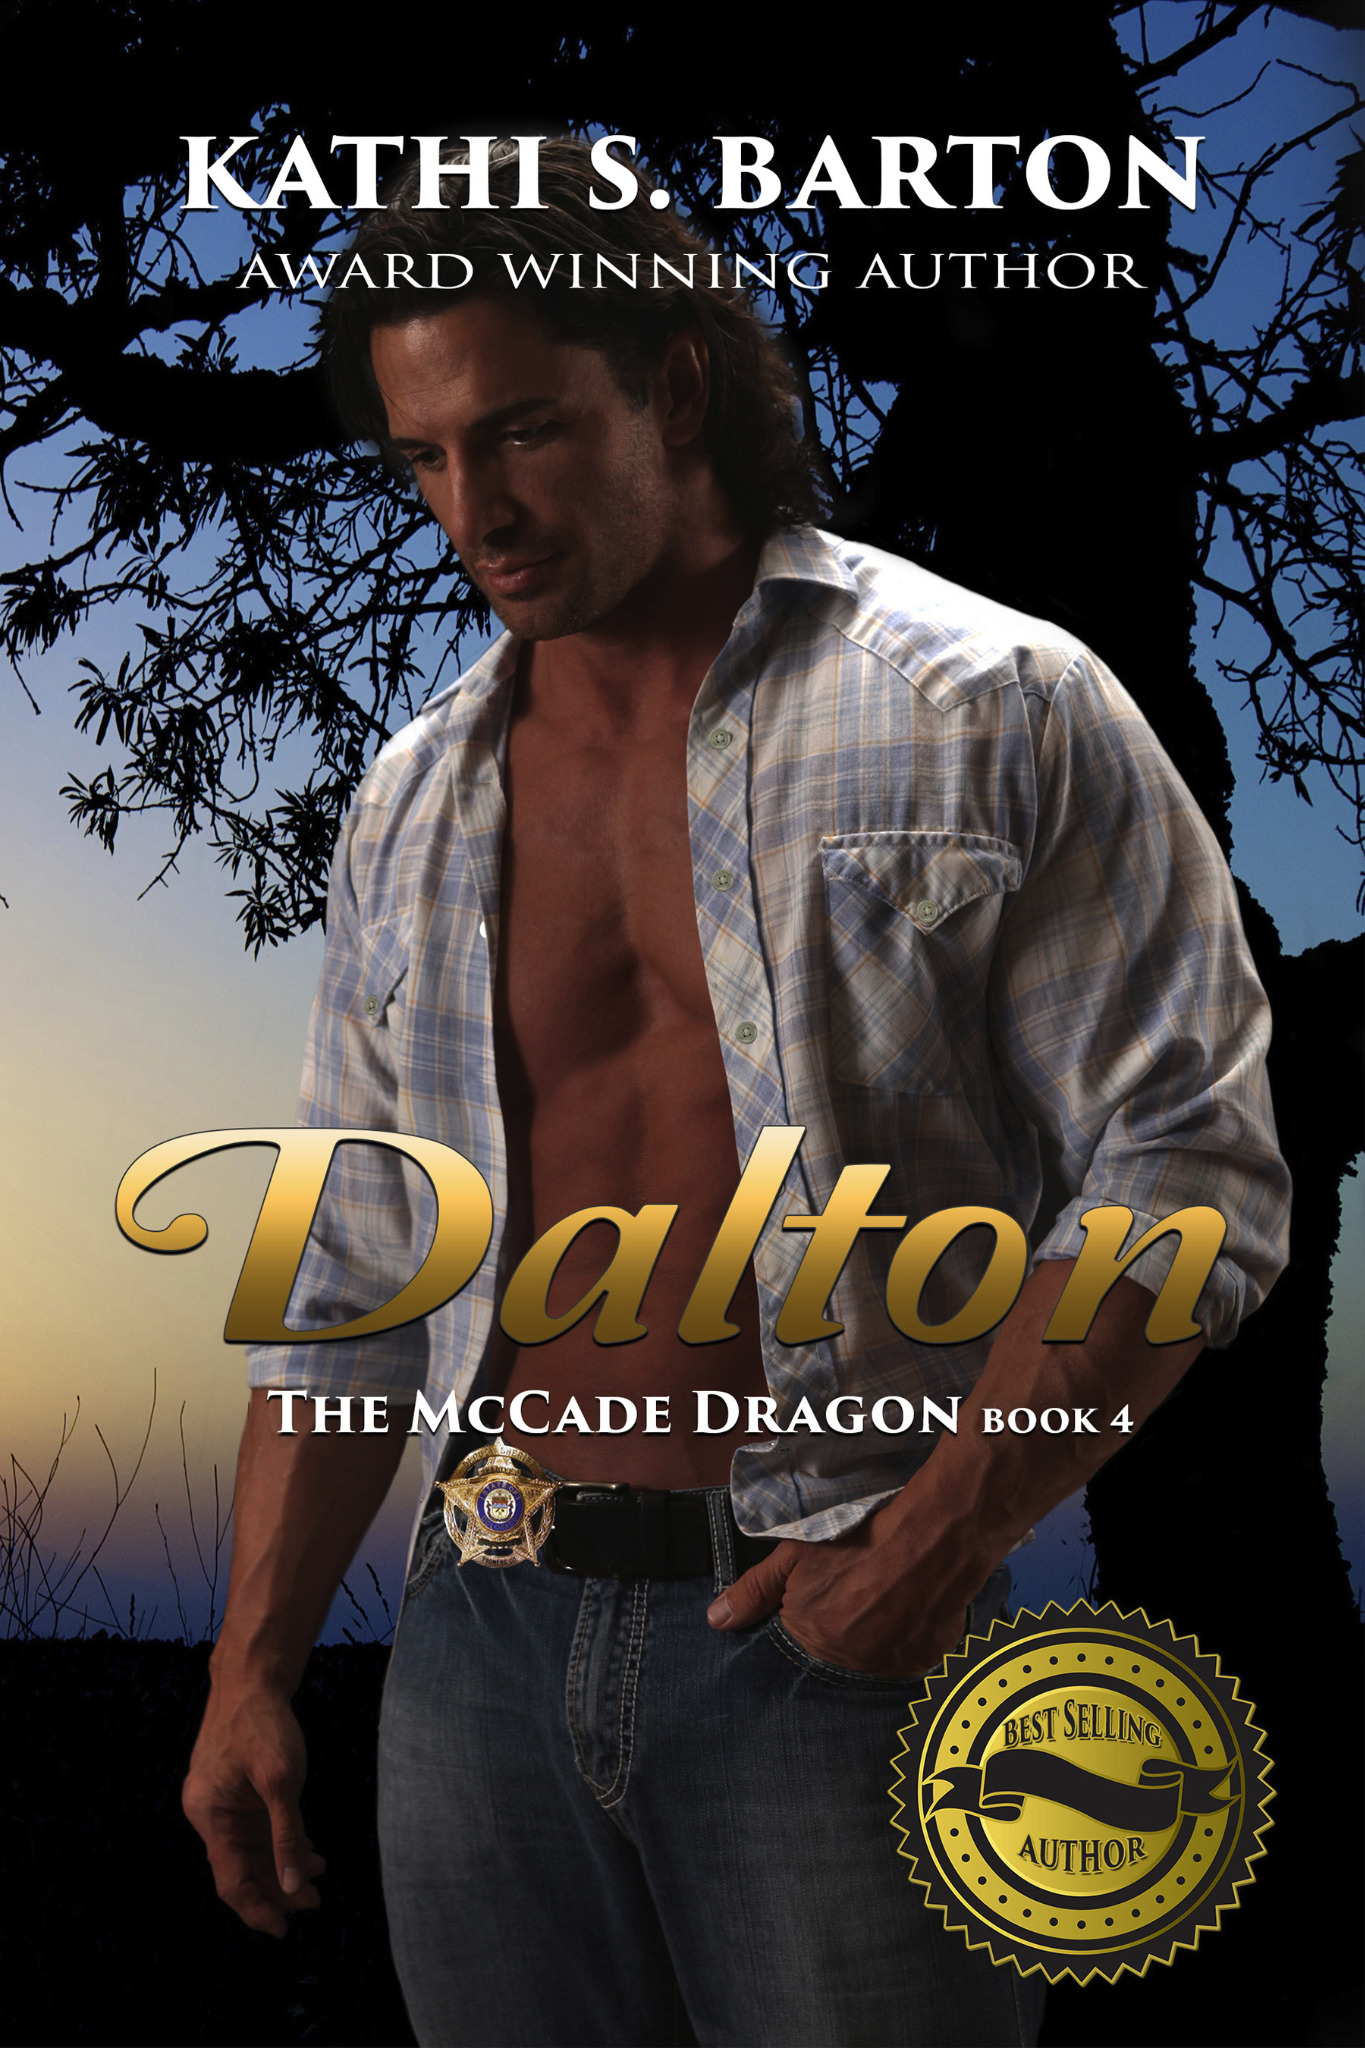 Dalton - The McCade Dragon Book 4